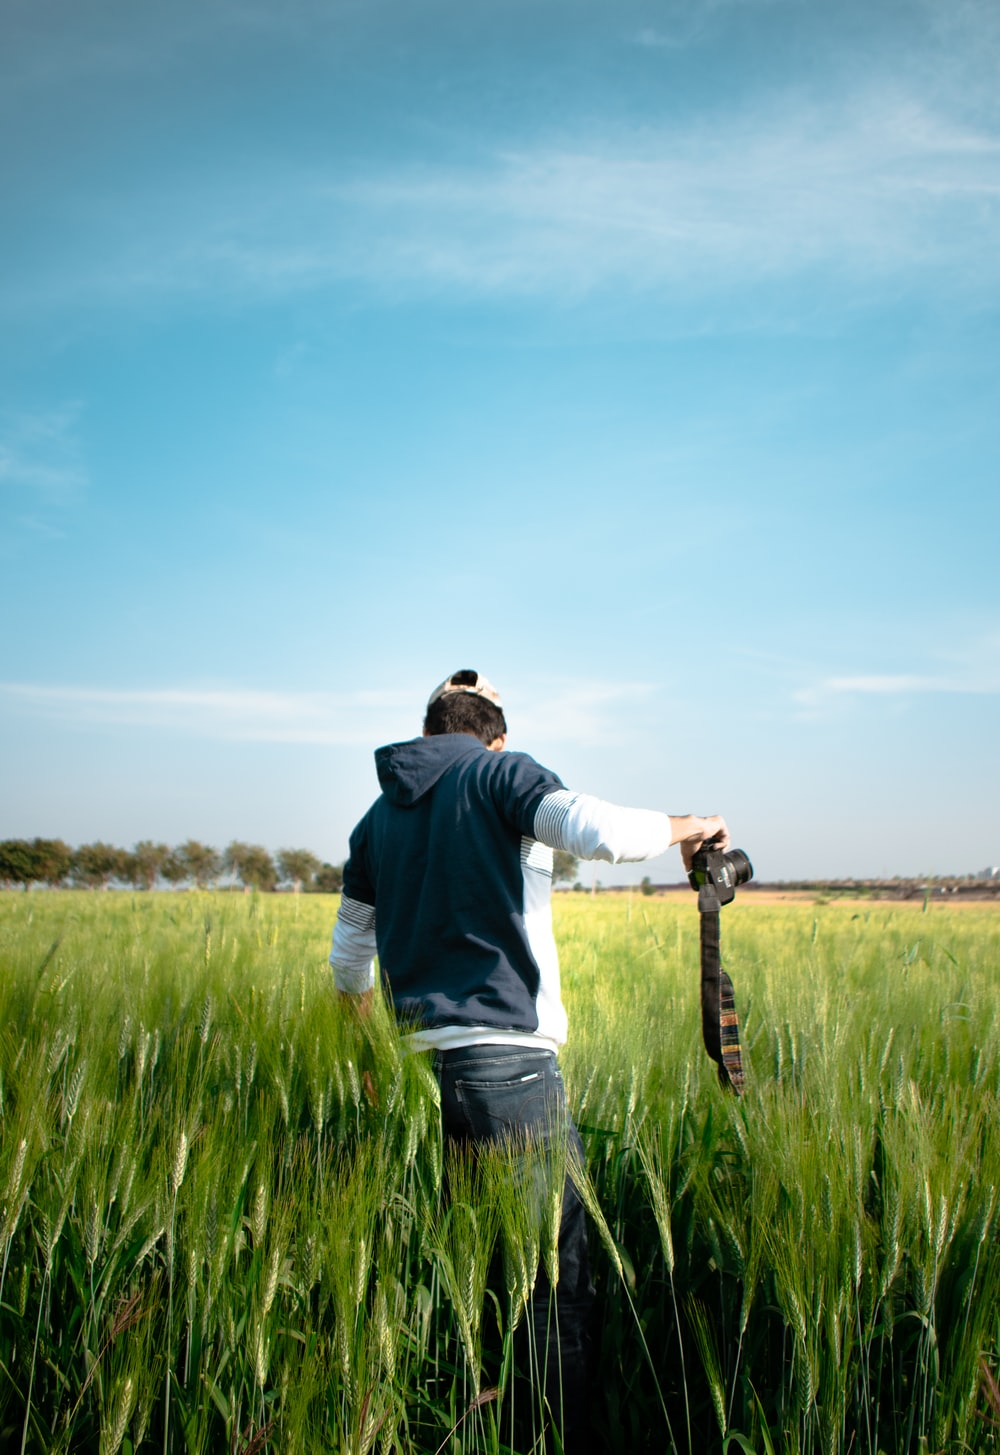 man in black jacket holding black dslr camera standing on green grass field during daytime